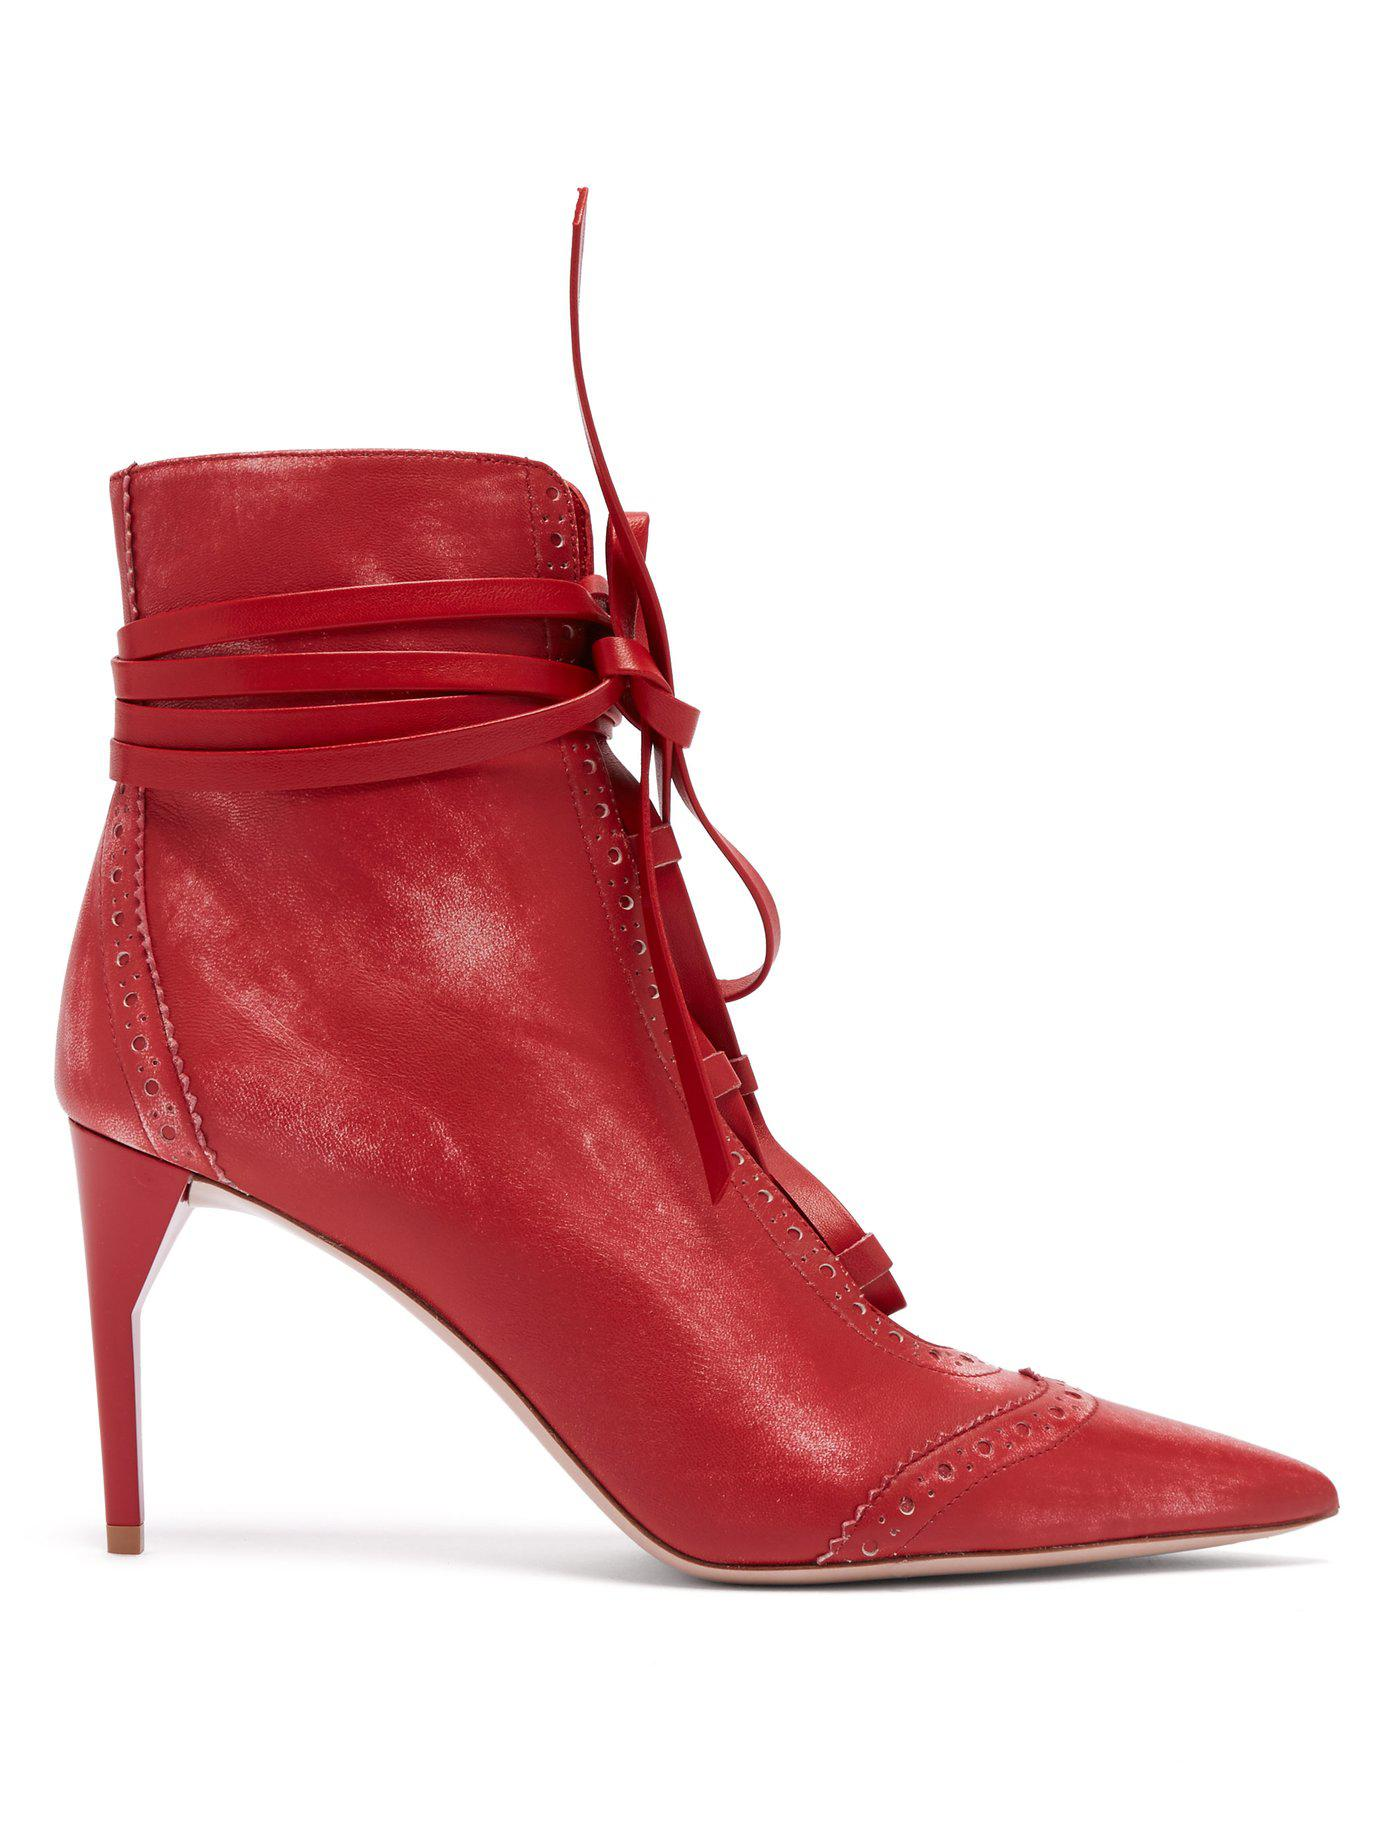 29ed173198682 Lyst - Miu Miu Point Toe Lace Up Leather Ankle Boots in Red